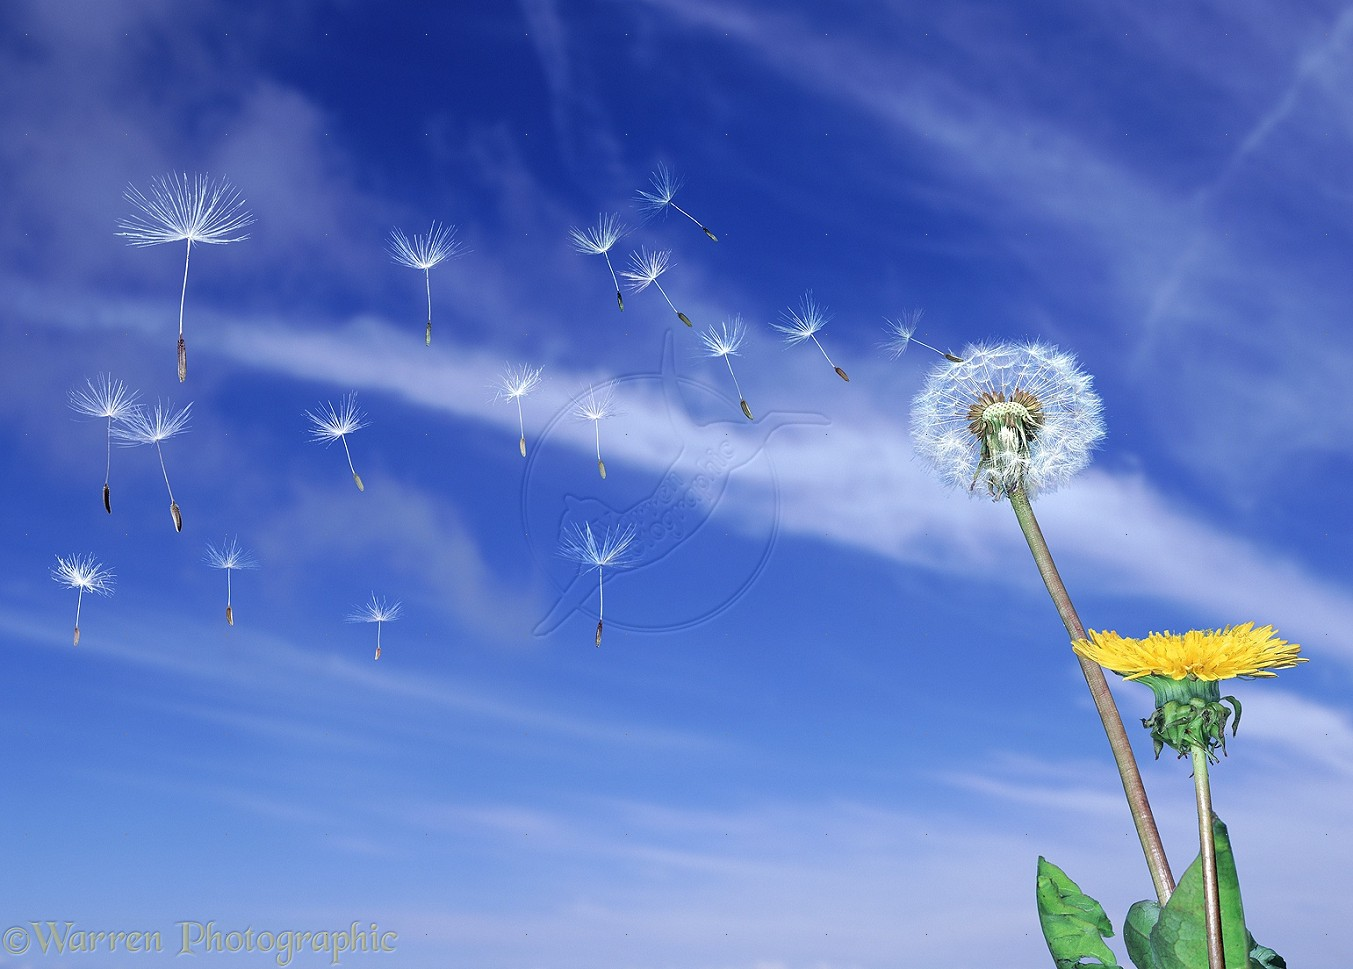 Dandelion With Seeds Blowing Off - 1353x969 iWallHD - Wallpaper HD